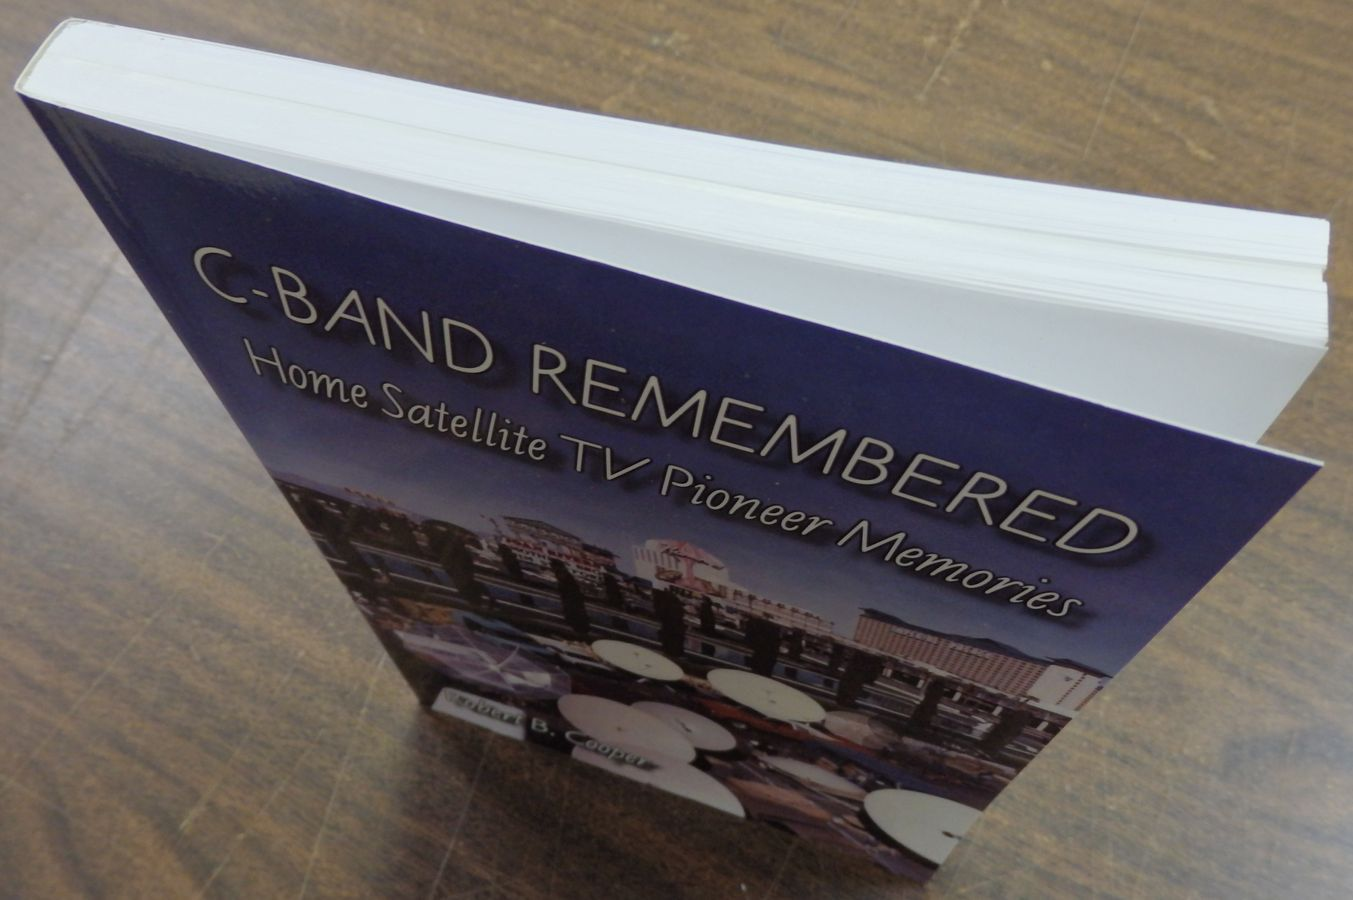 C-BAND REMEMBERED, 197 page paperback book